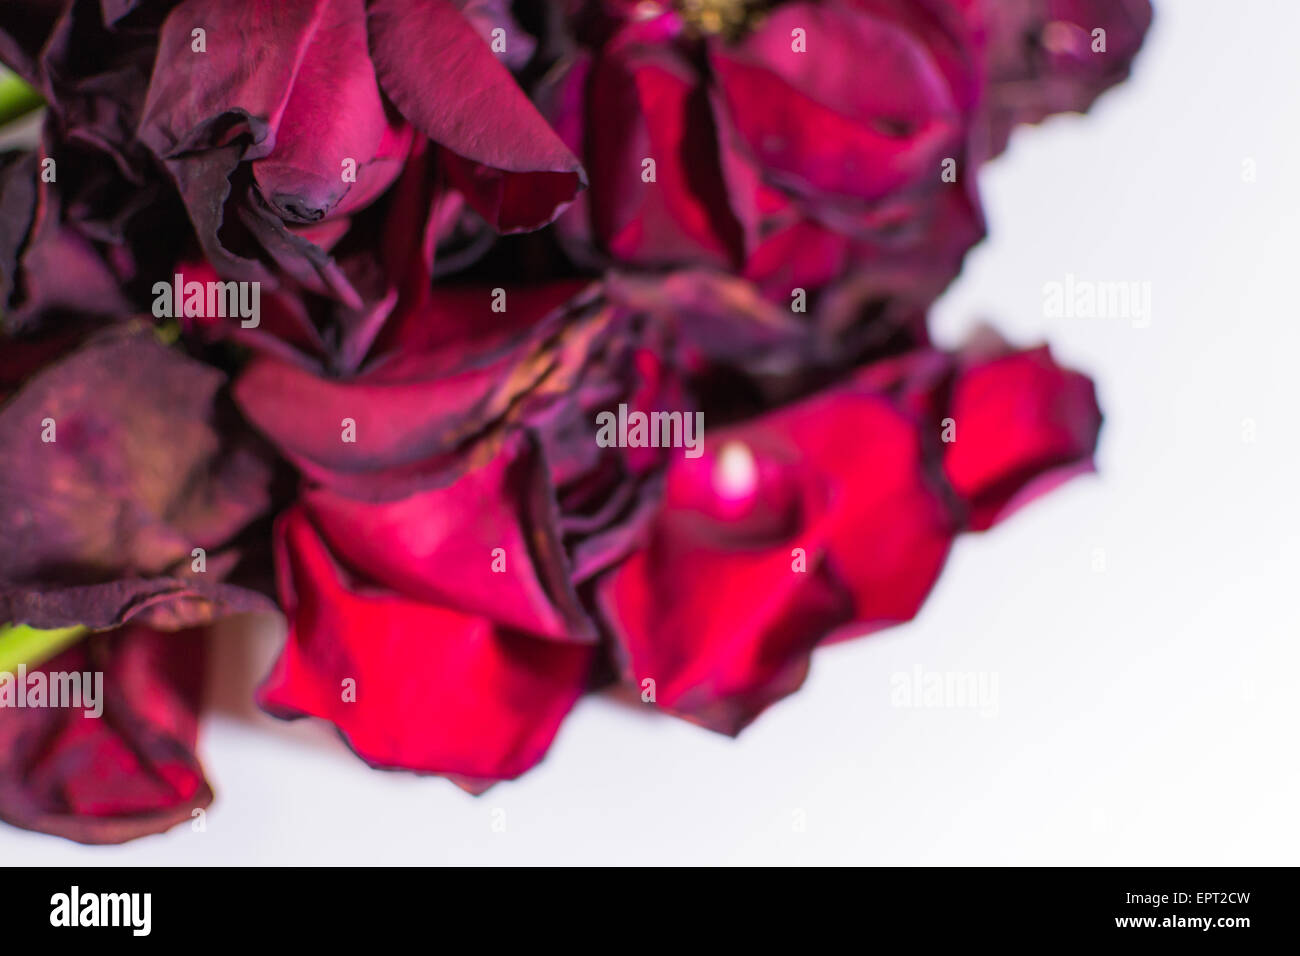 Old and dying rose petals with defocus areas on white background - Stock Image